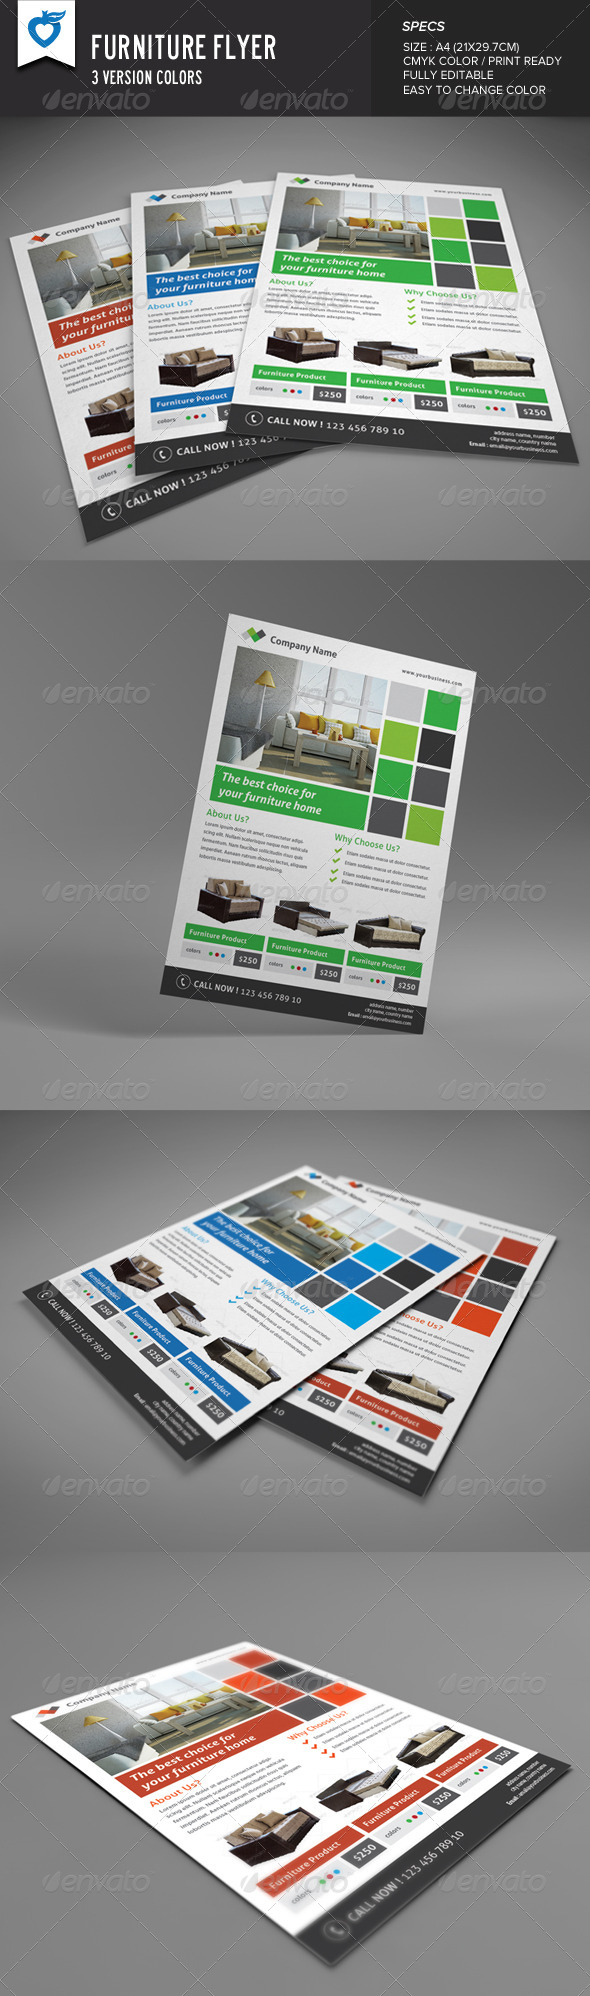 GraphicRiver Furniture Flyer 8598286